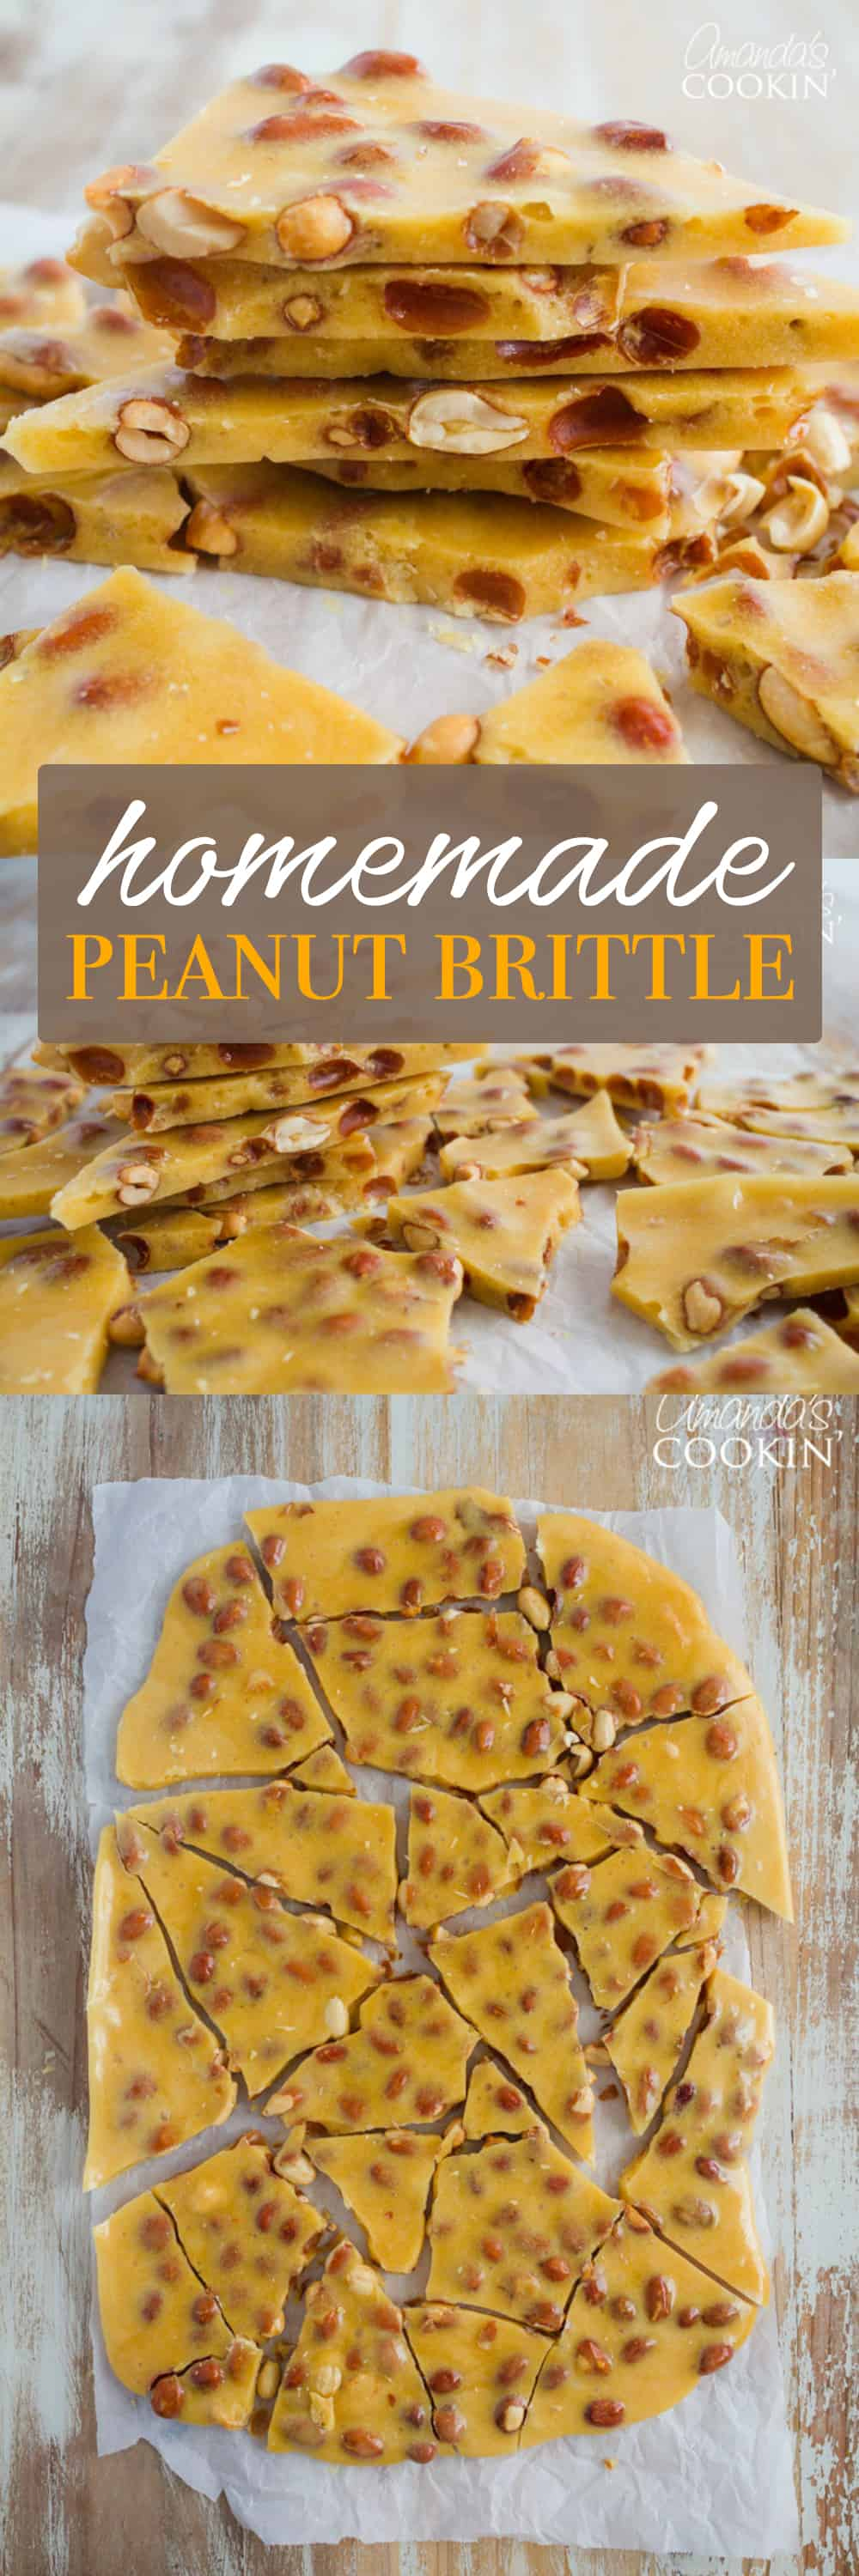 What's better than a homemade batch of Peanut Brittle during the holidays? This delectable candy treat will become your family's favorite tradition!